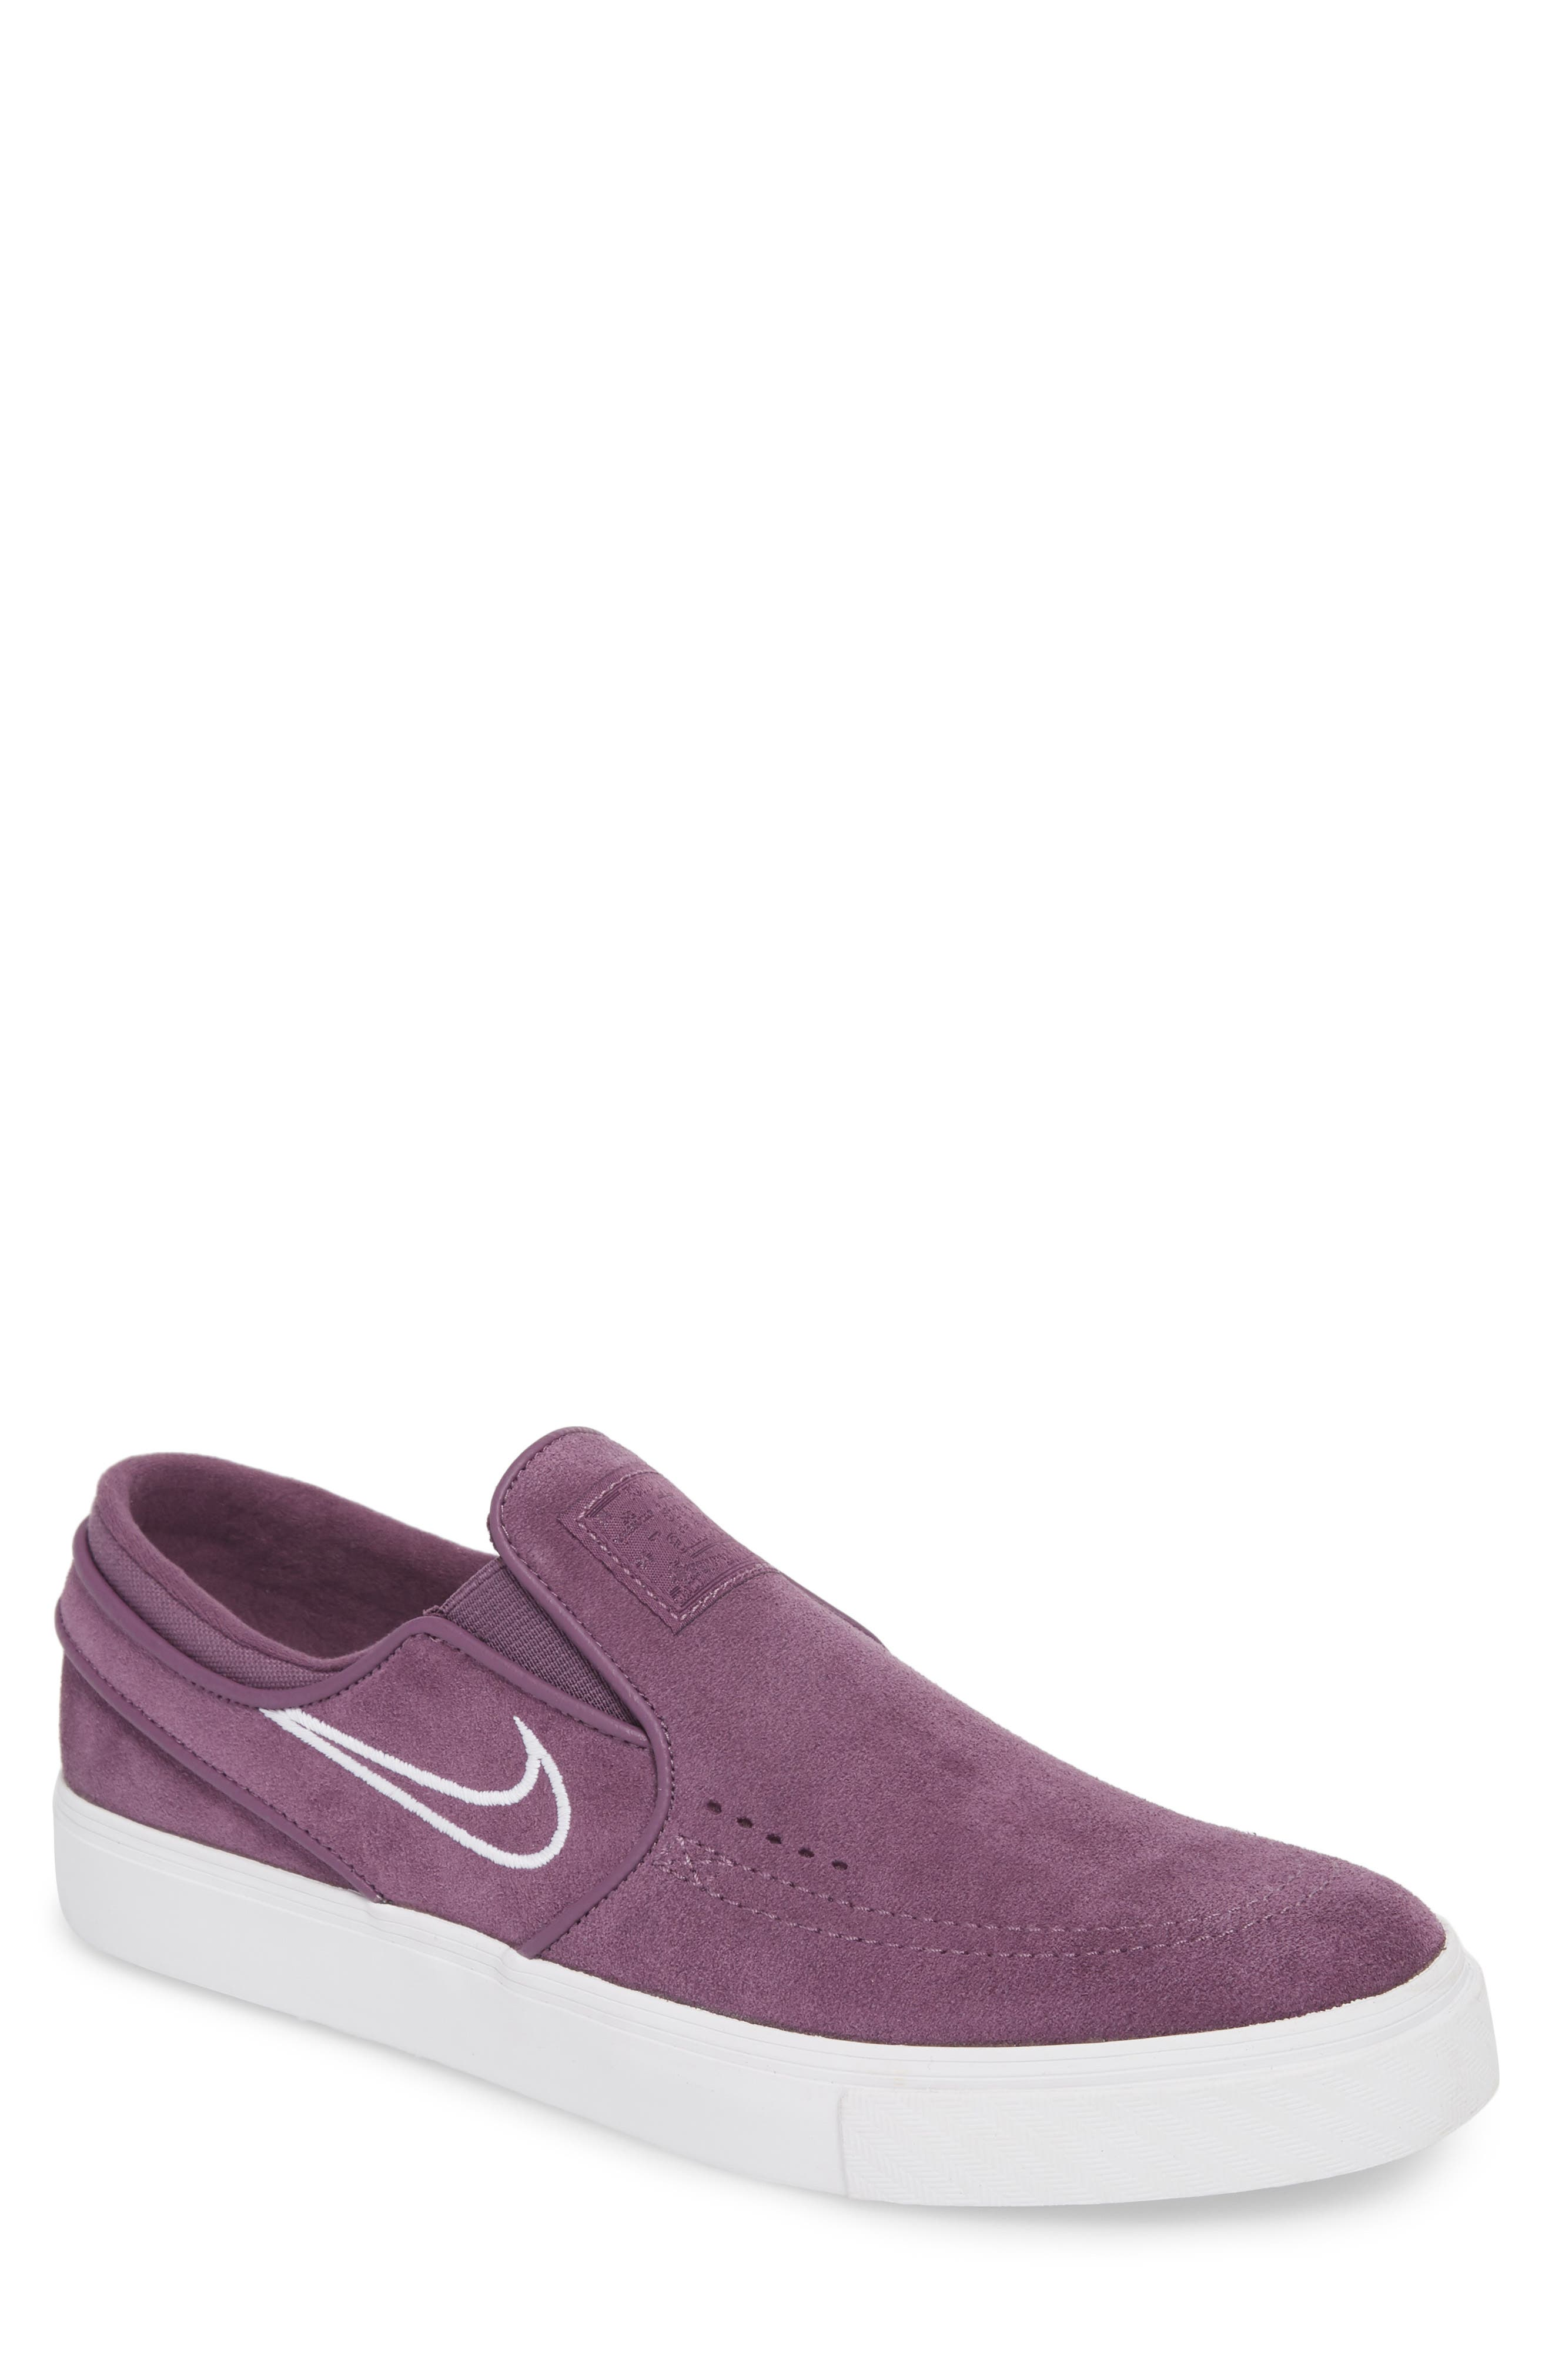 Zoom Stefan Janoski Slip-On,                             Main thumbnail 1, color,                             Pro Purple/ White/ Grey